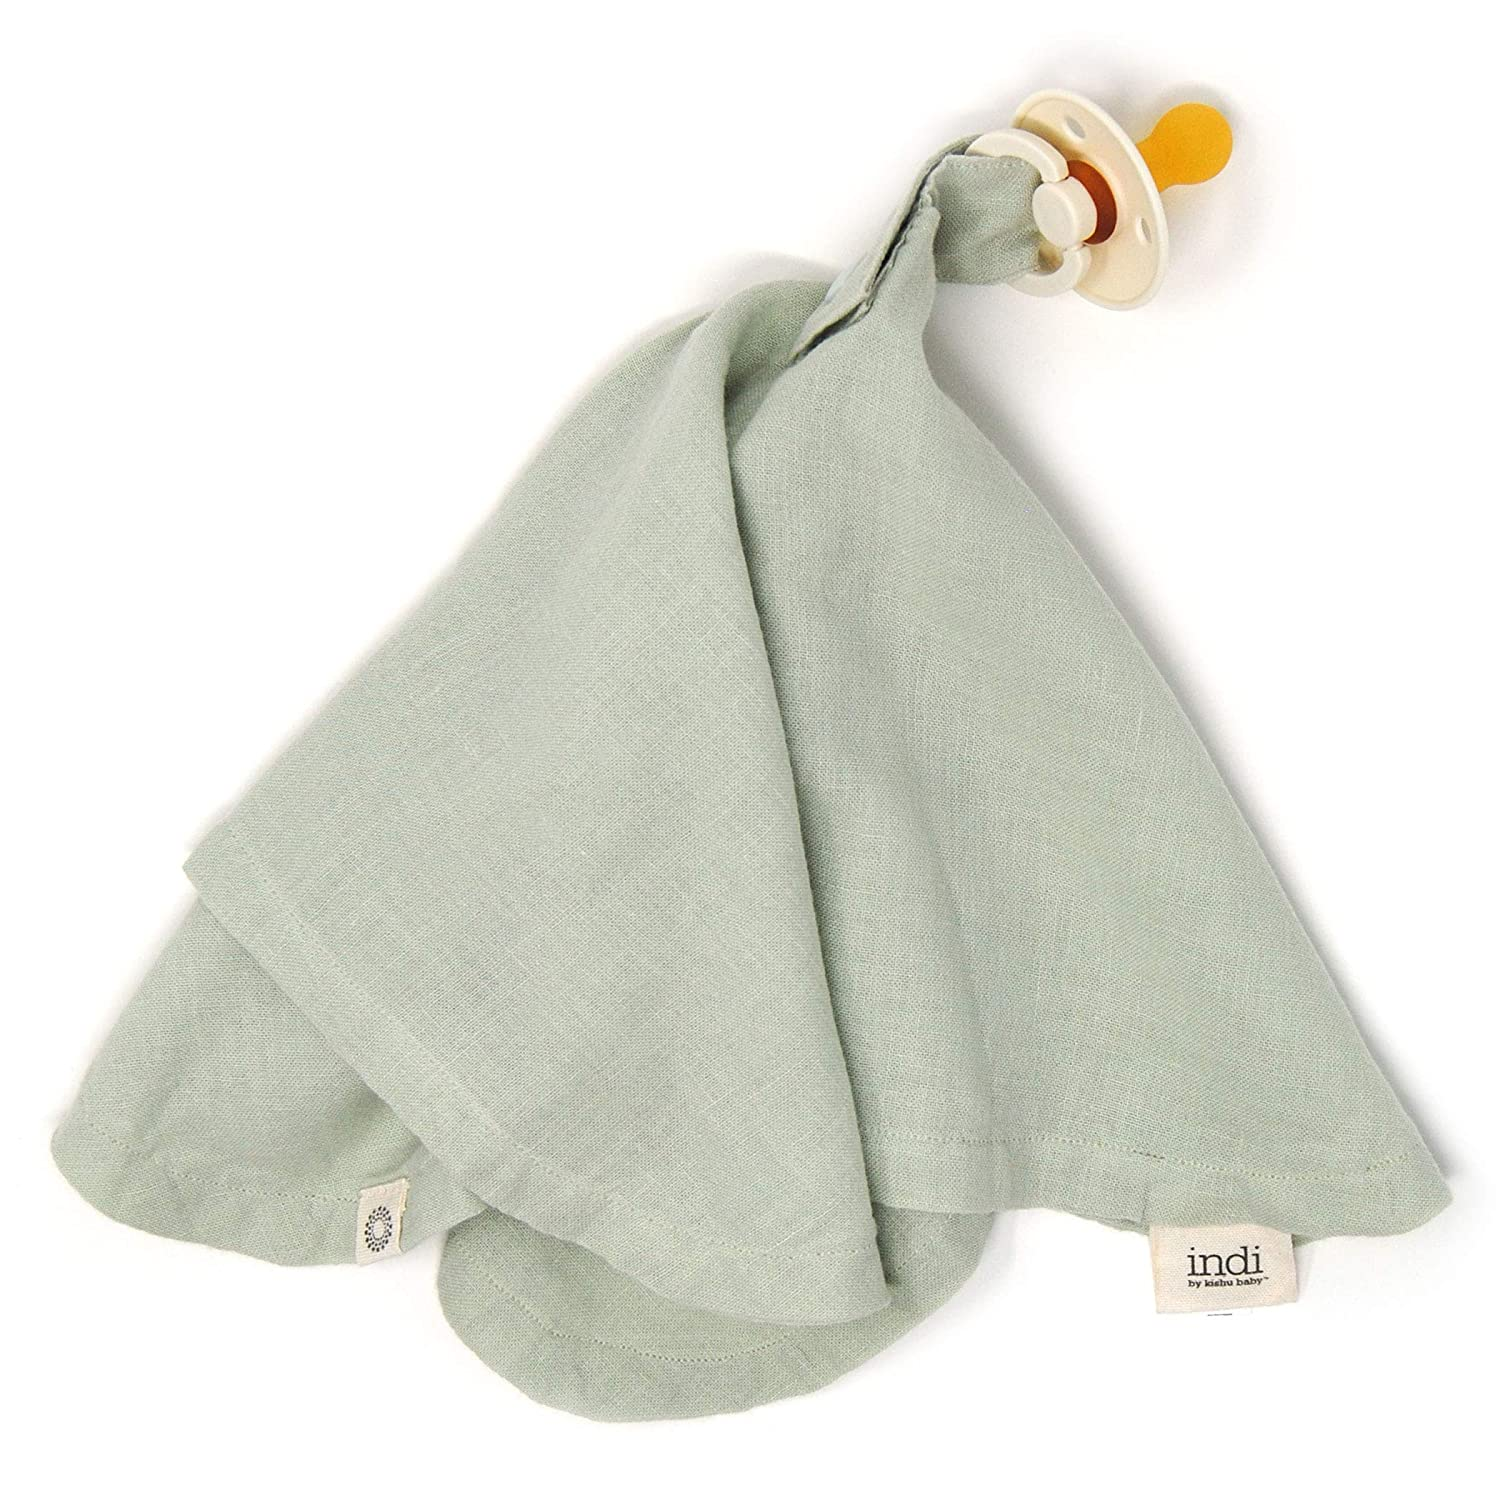 Indi by Kishu Baby - Organic Muslin Baby Blanket with Paci Holder - 100% Organic Cotton Muslin Mini Baby Blanket with Snap to Secure Baby Pacifier - Pacifier Not Included (Sage)